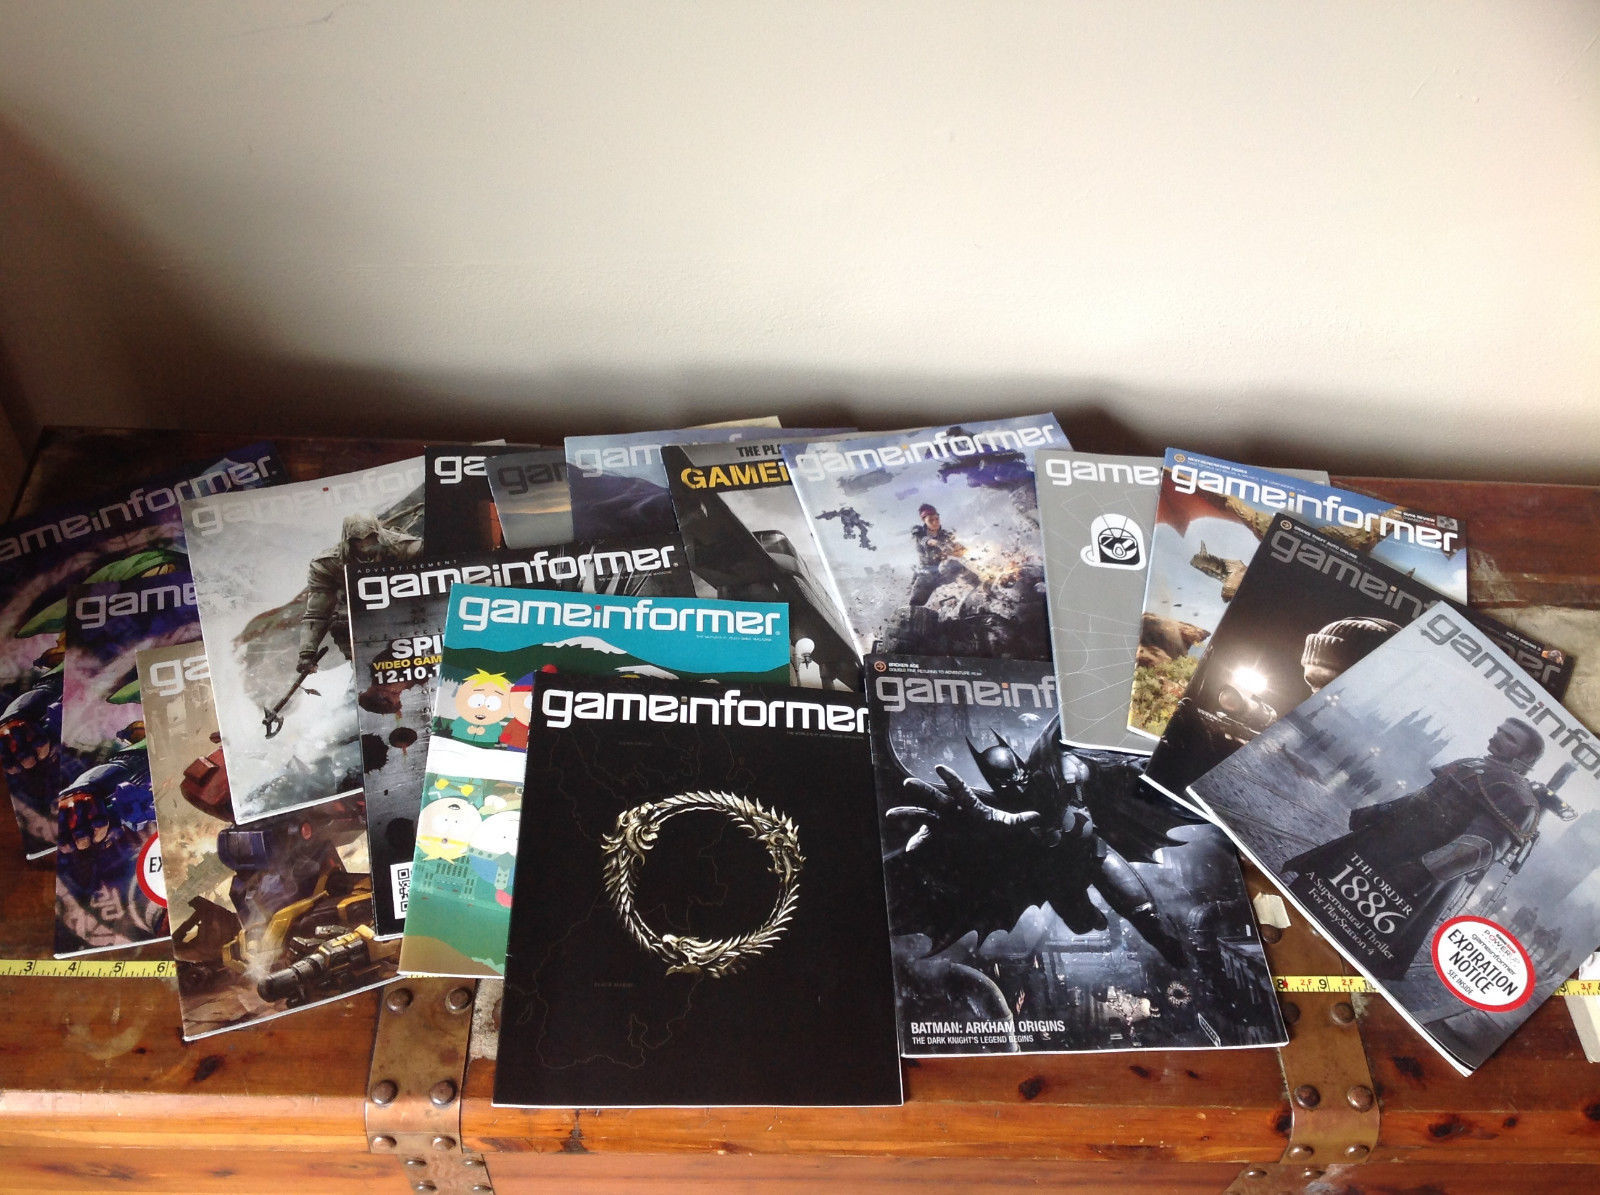 Game Informer Gaming Magazine 16 Back Issues See Number of Issues Below